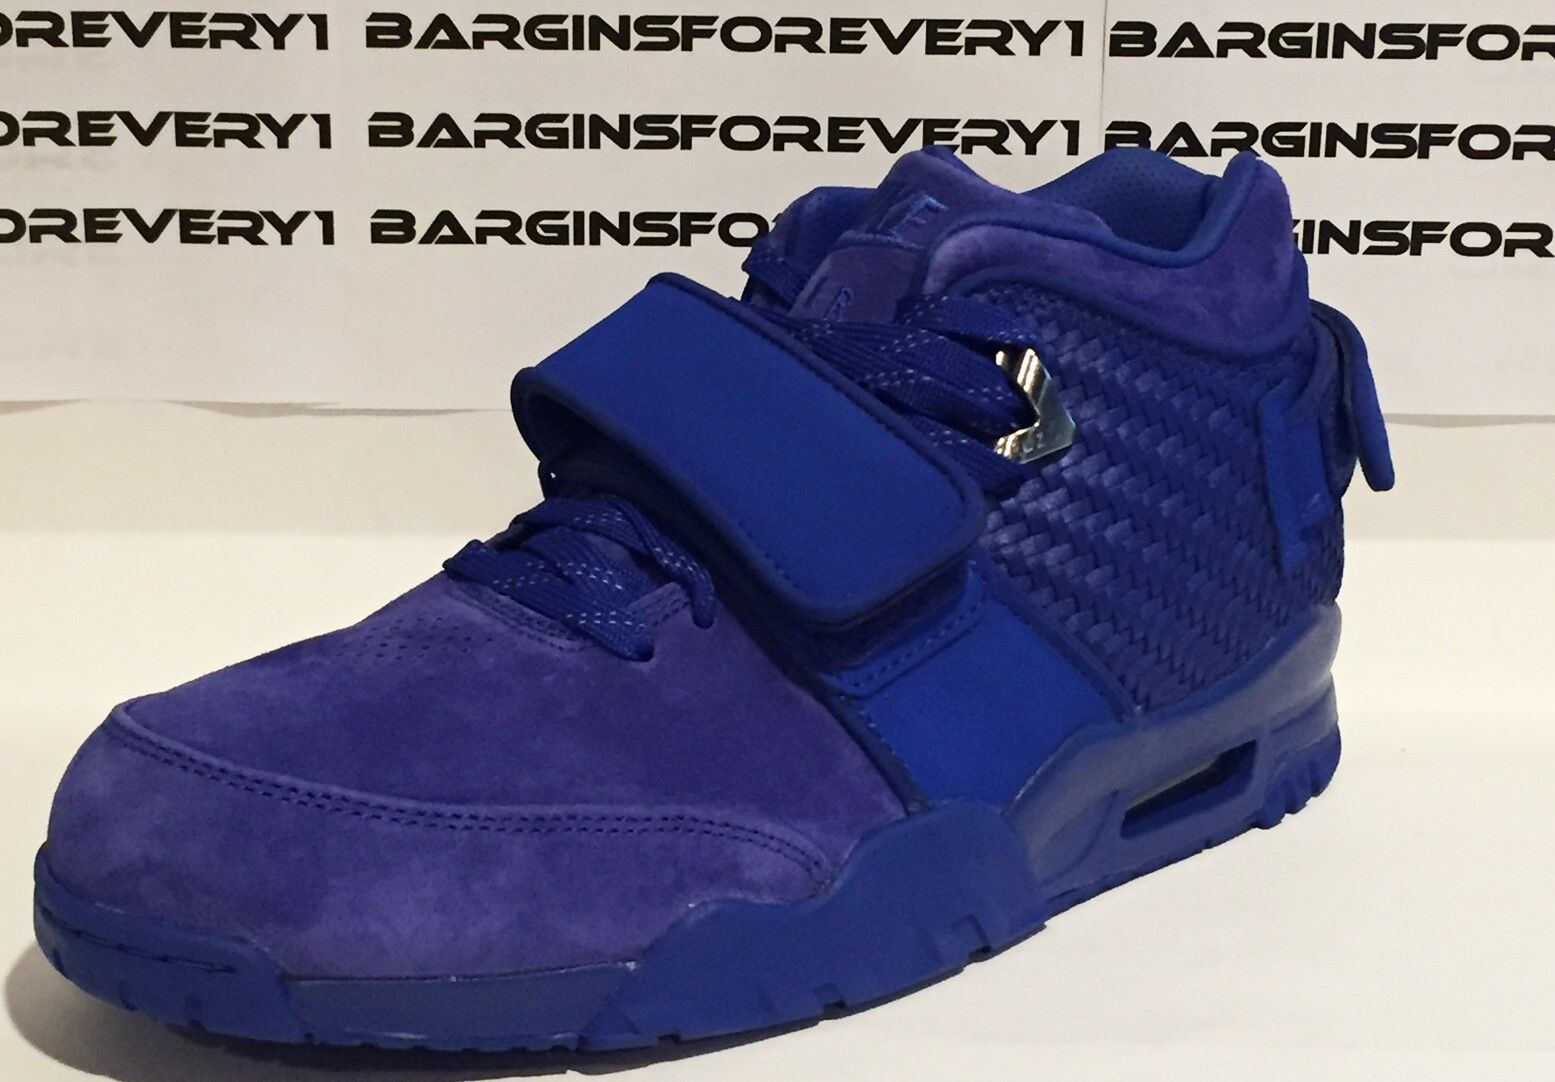 Nike Air Trainer Victor Cruz PRM - Size 10 - Rush Blue/Gym Red - 812637-400